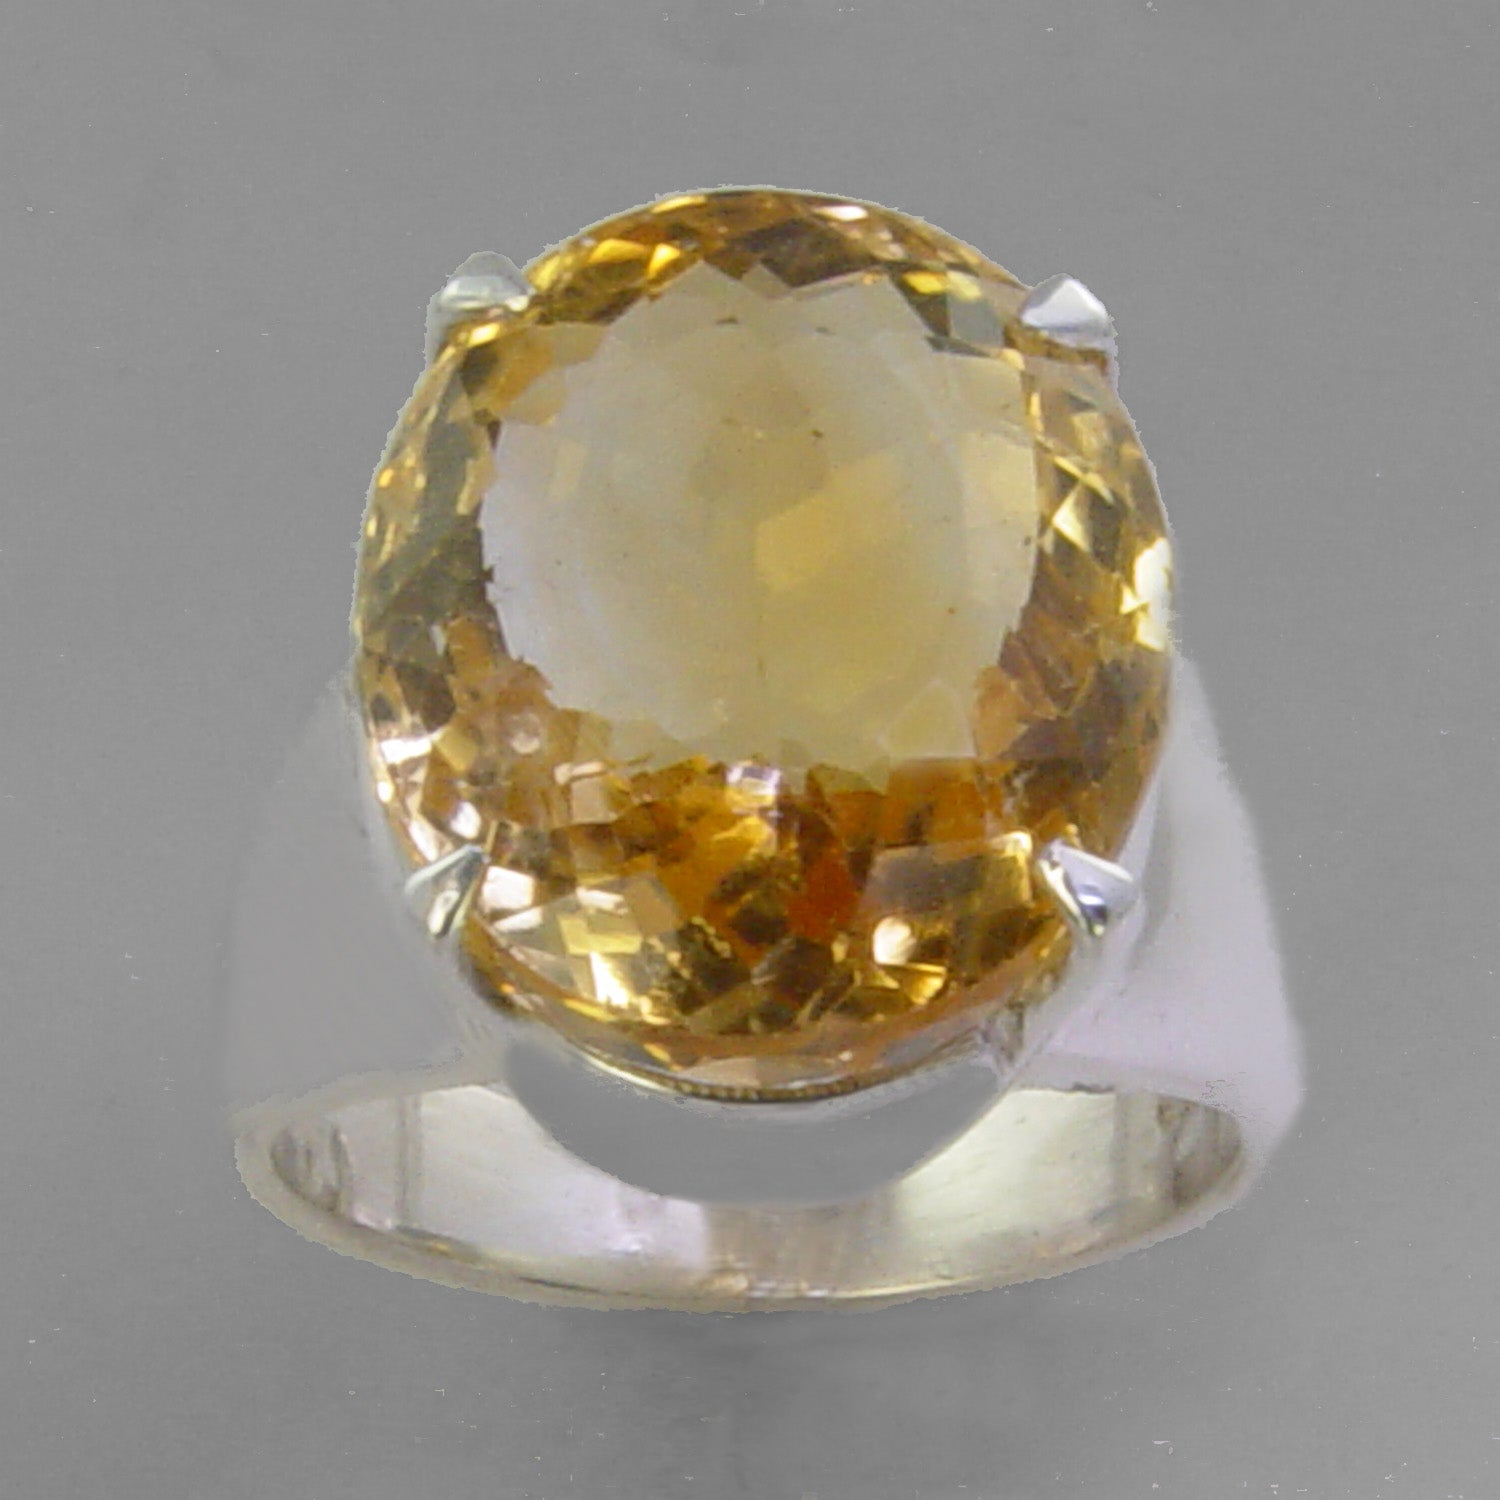 Citrine 15.8 ct Oval  Prong Set Sterling Silver Ring, Size 8.5